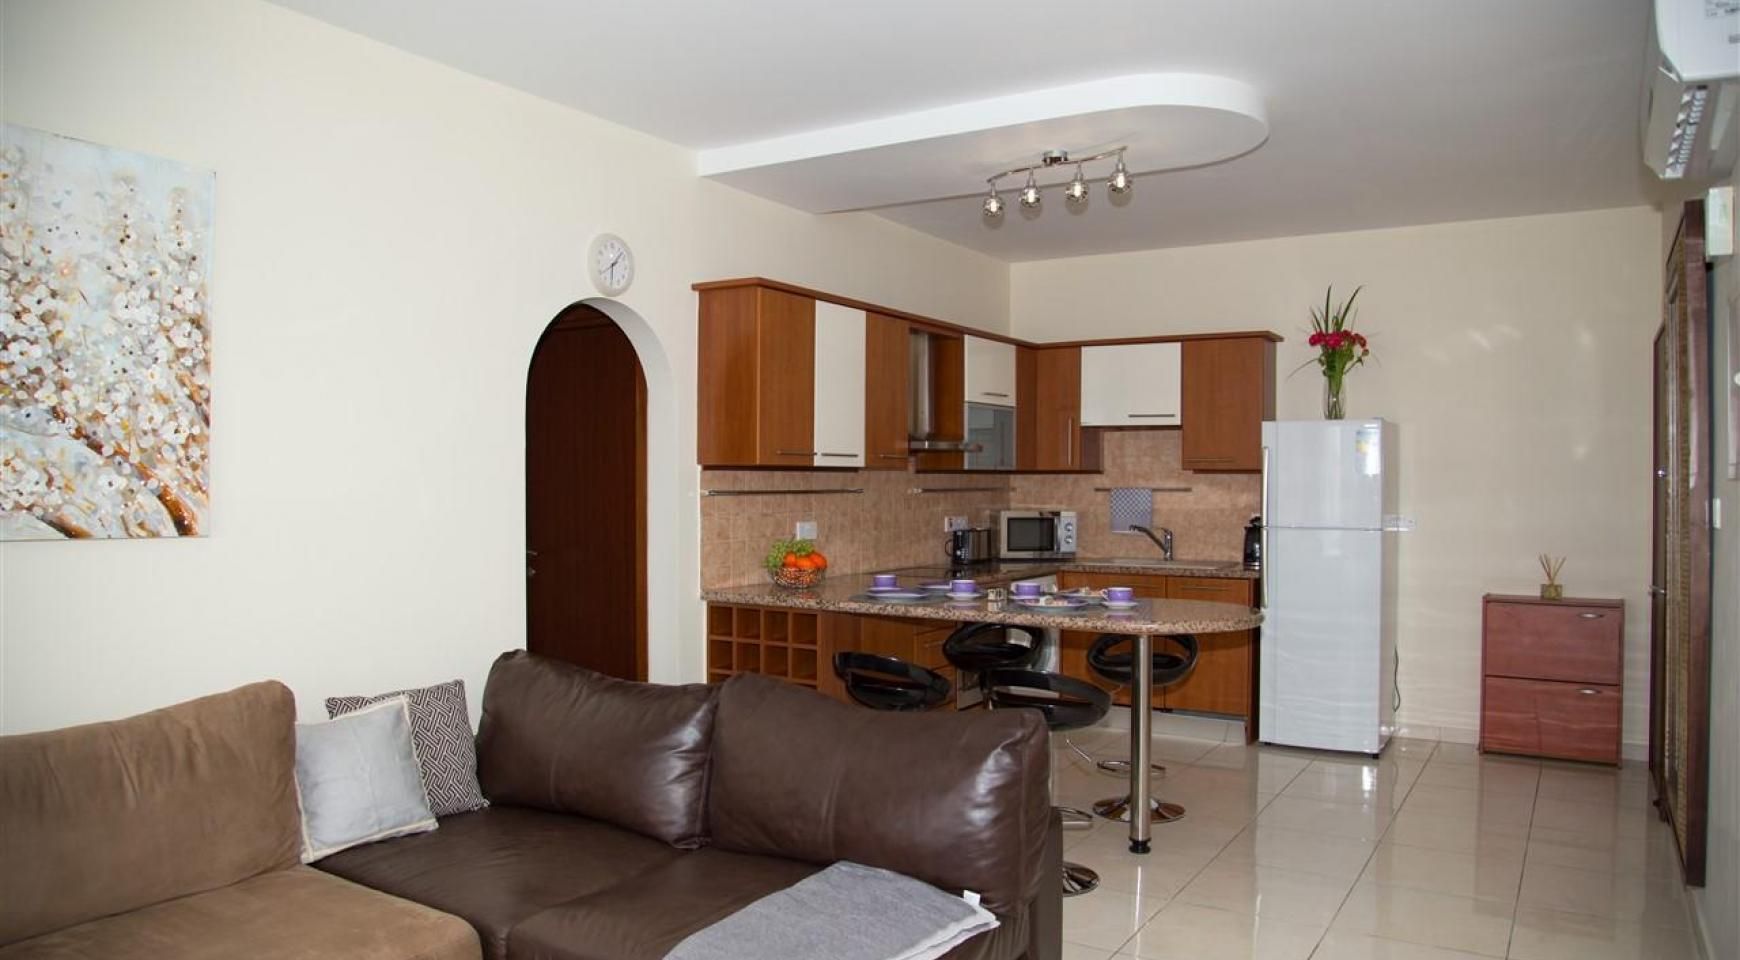 2 Bedroom Apartment Mesogios Iris 304 in the Complex near the Sea - 7